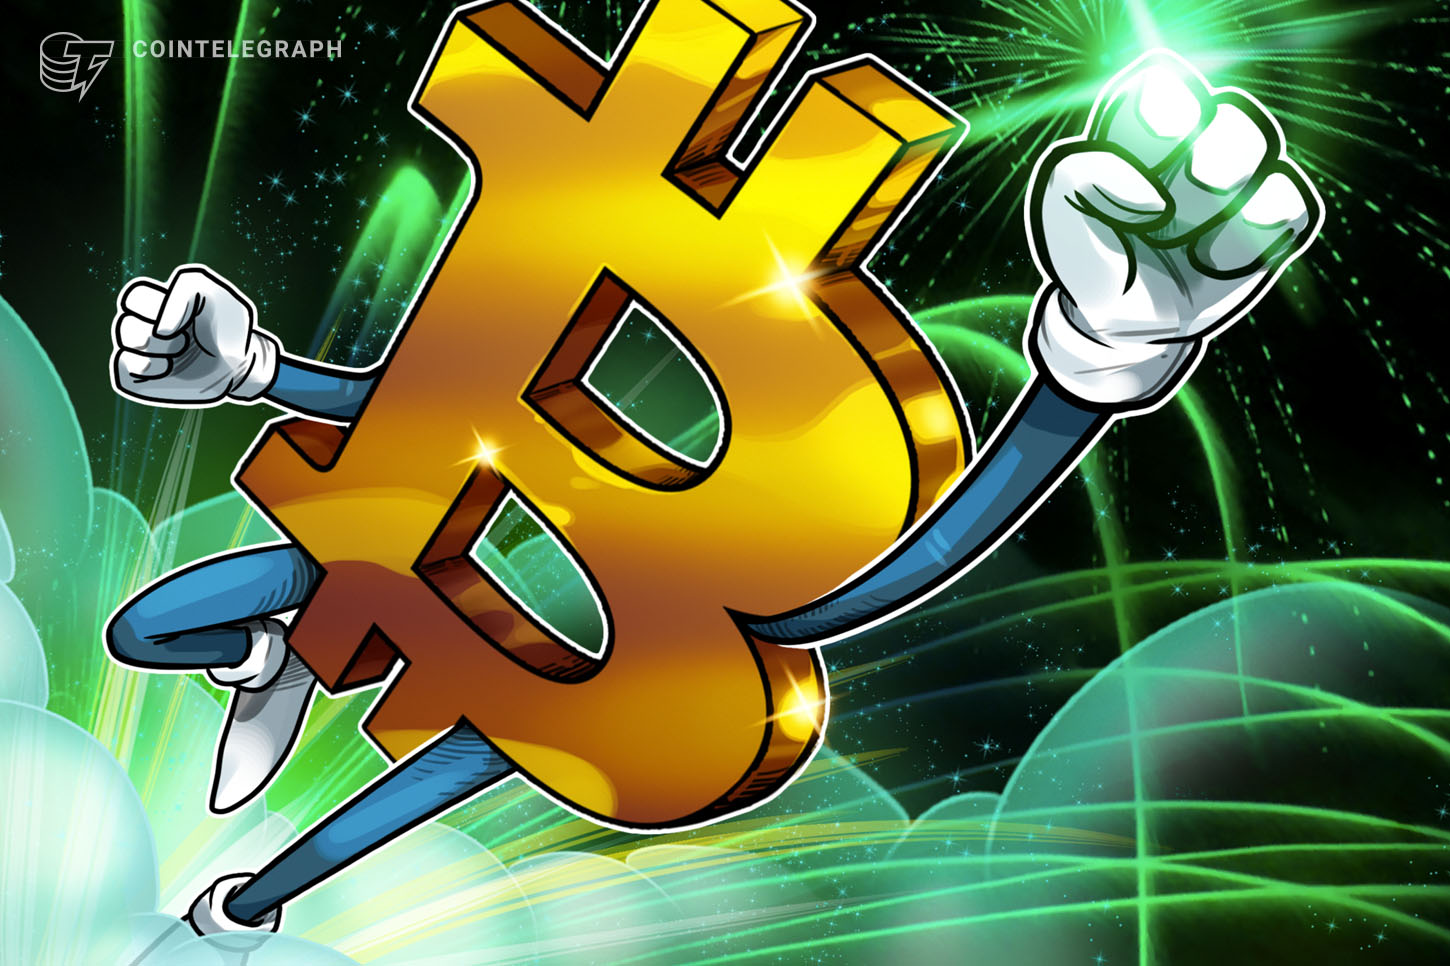 New data suggests Bitcoin could see BTC price 'double bubble' top in 2021